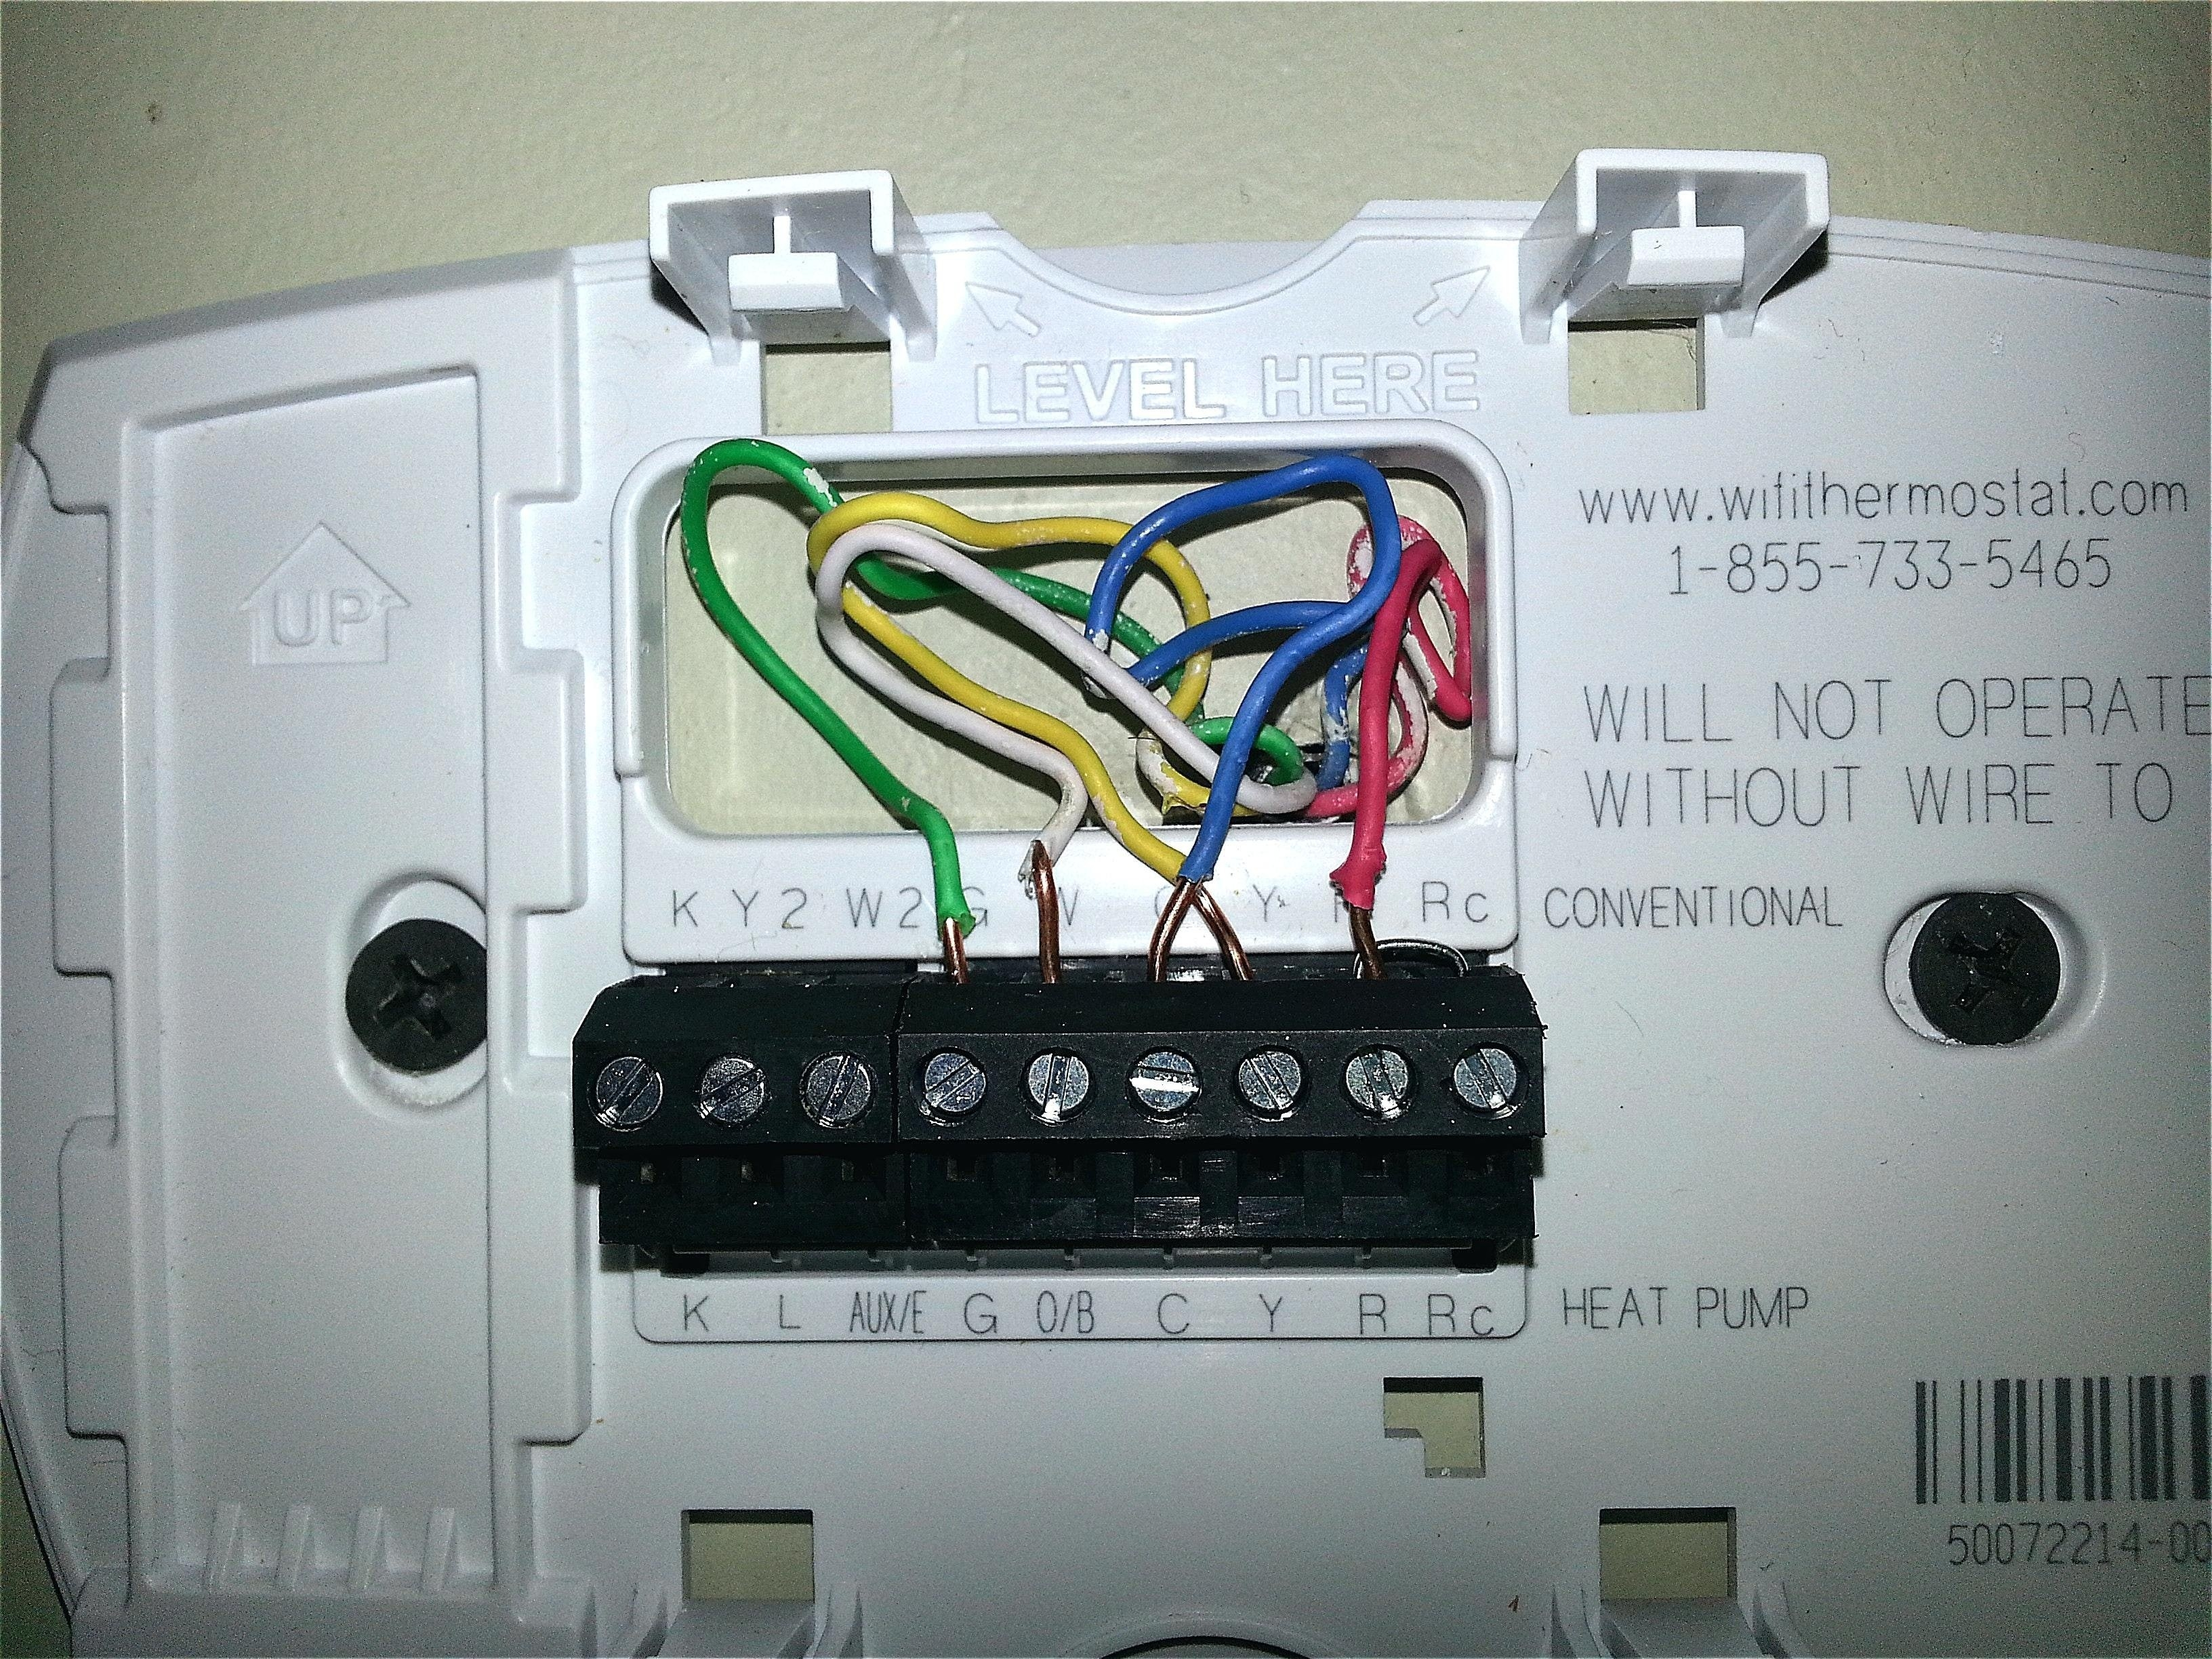 honeywell rth2300 rth221 wiring diagram | free wiring diagram honeywell thermostat wiring diagram 2300b 2 wire honeywell thermostat wiring diagram